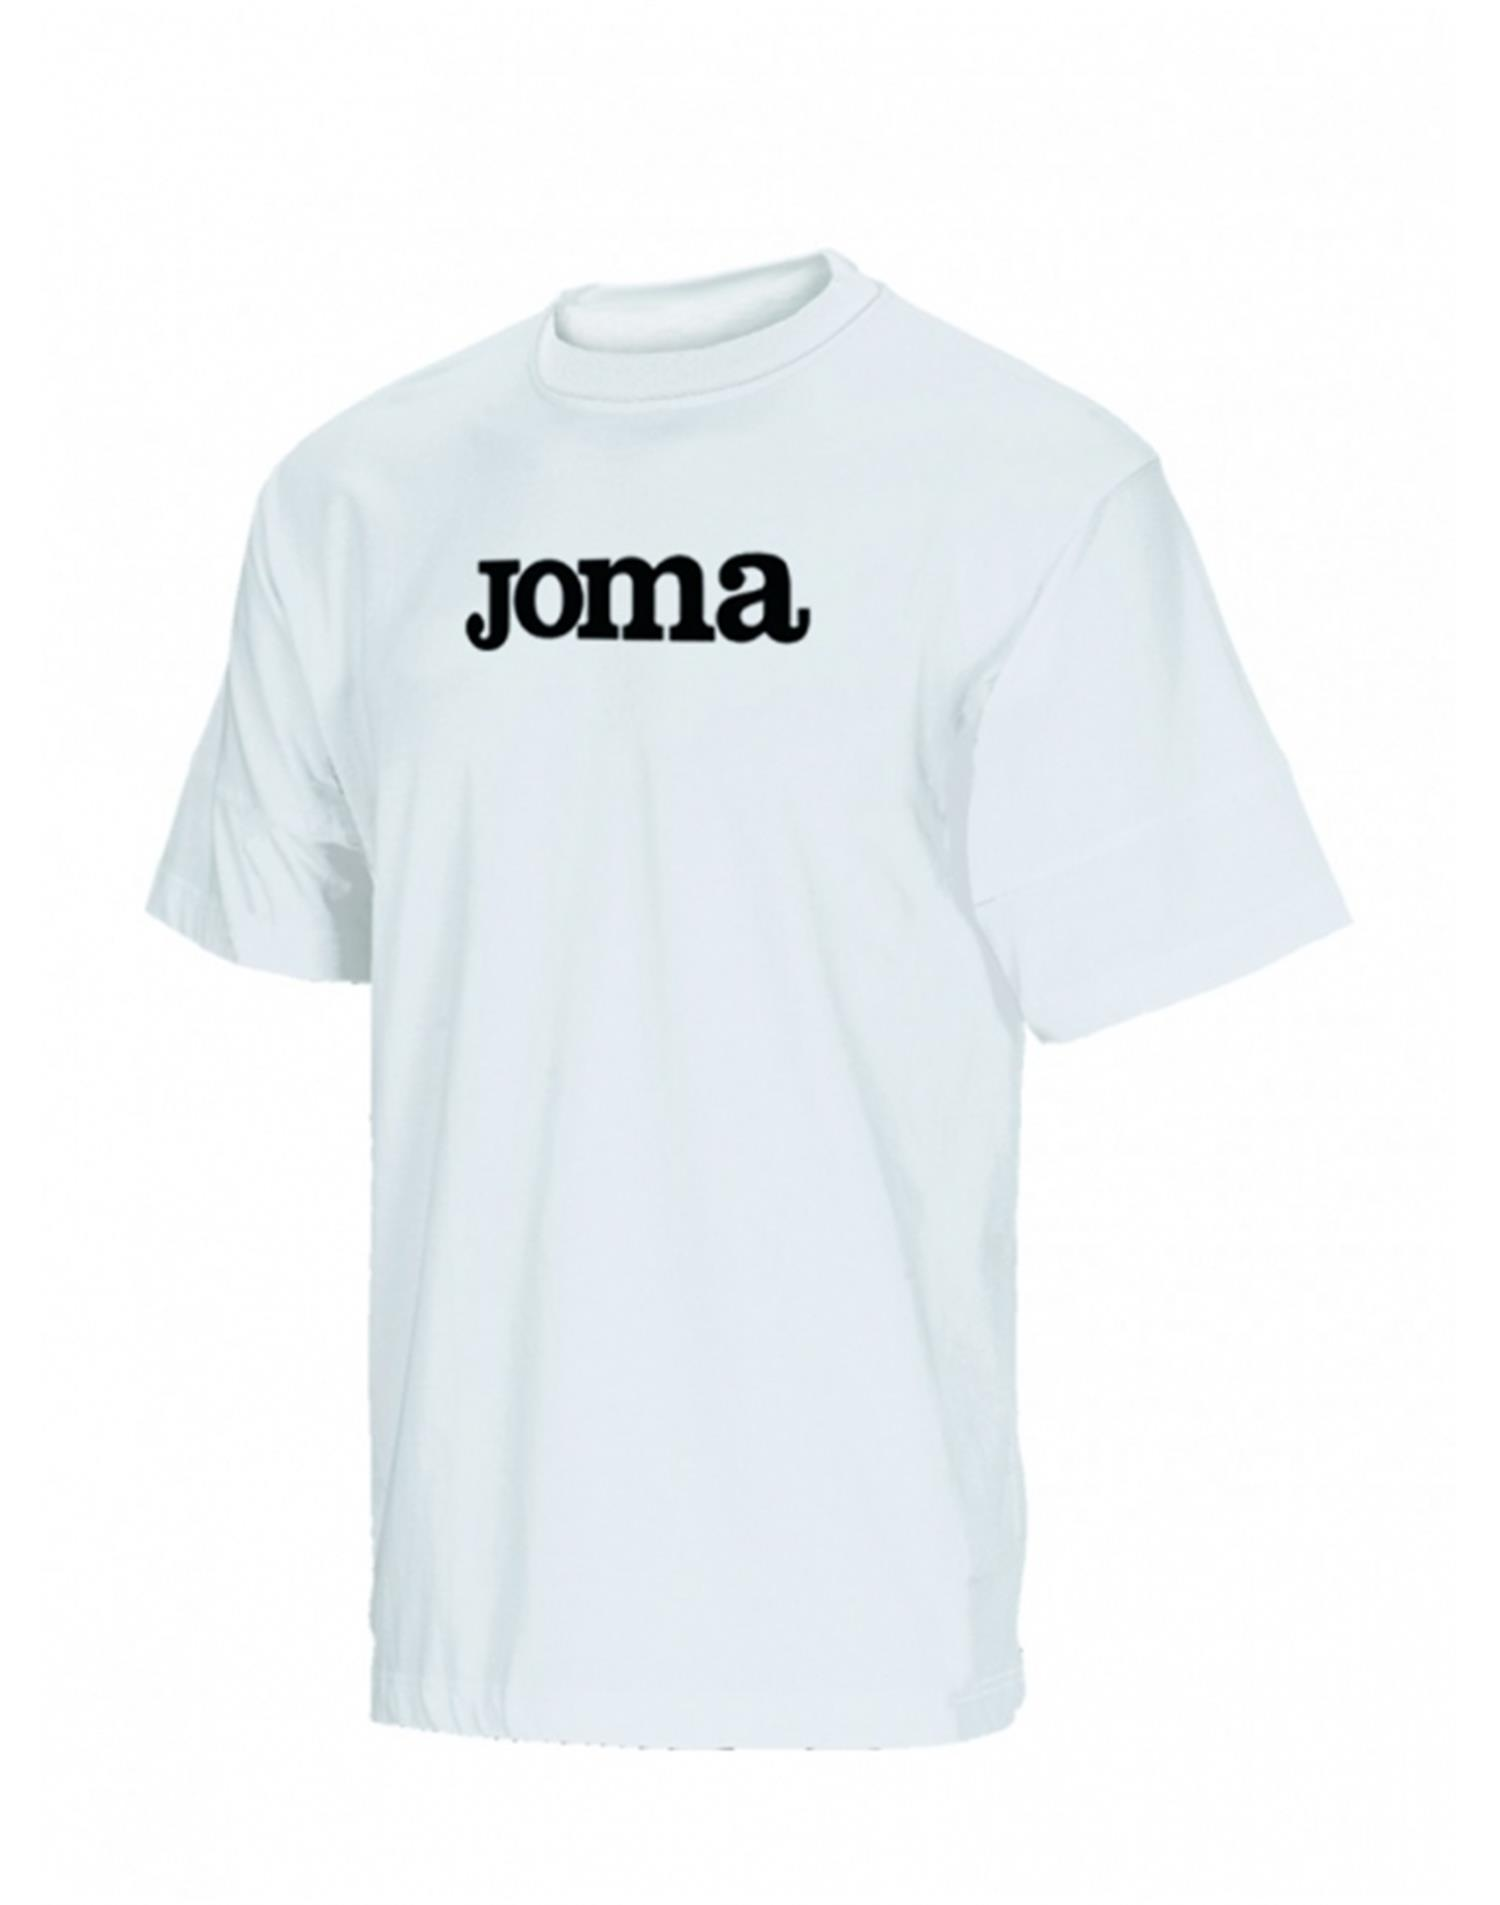 JOMA T-shirt Basic